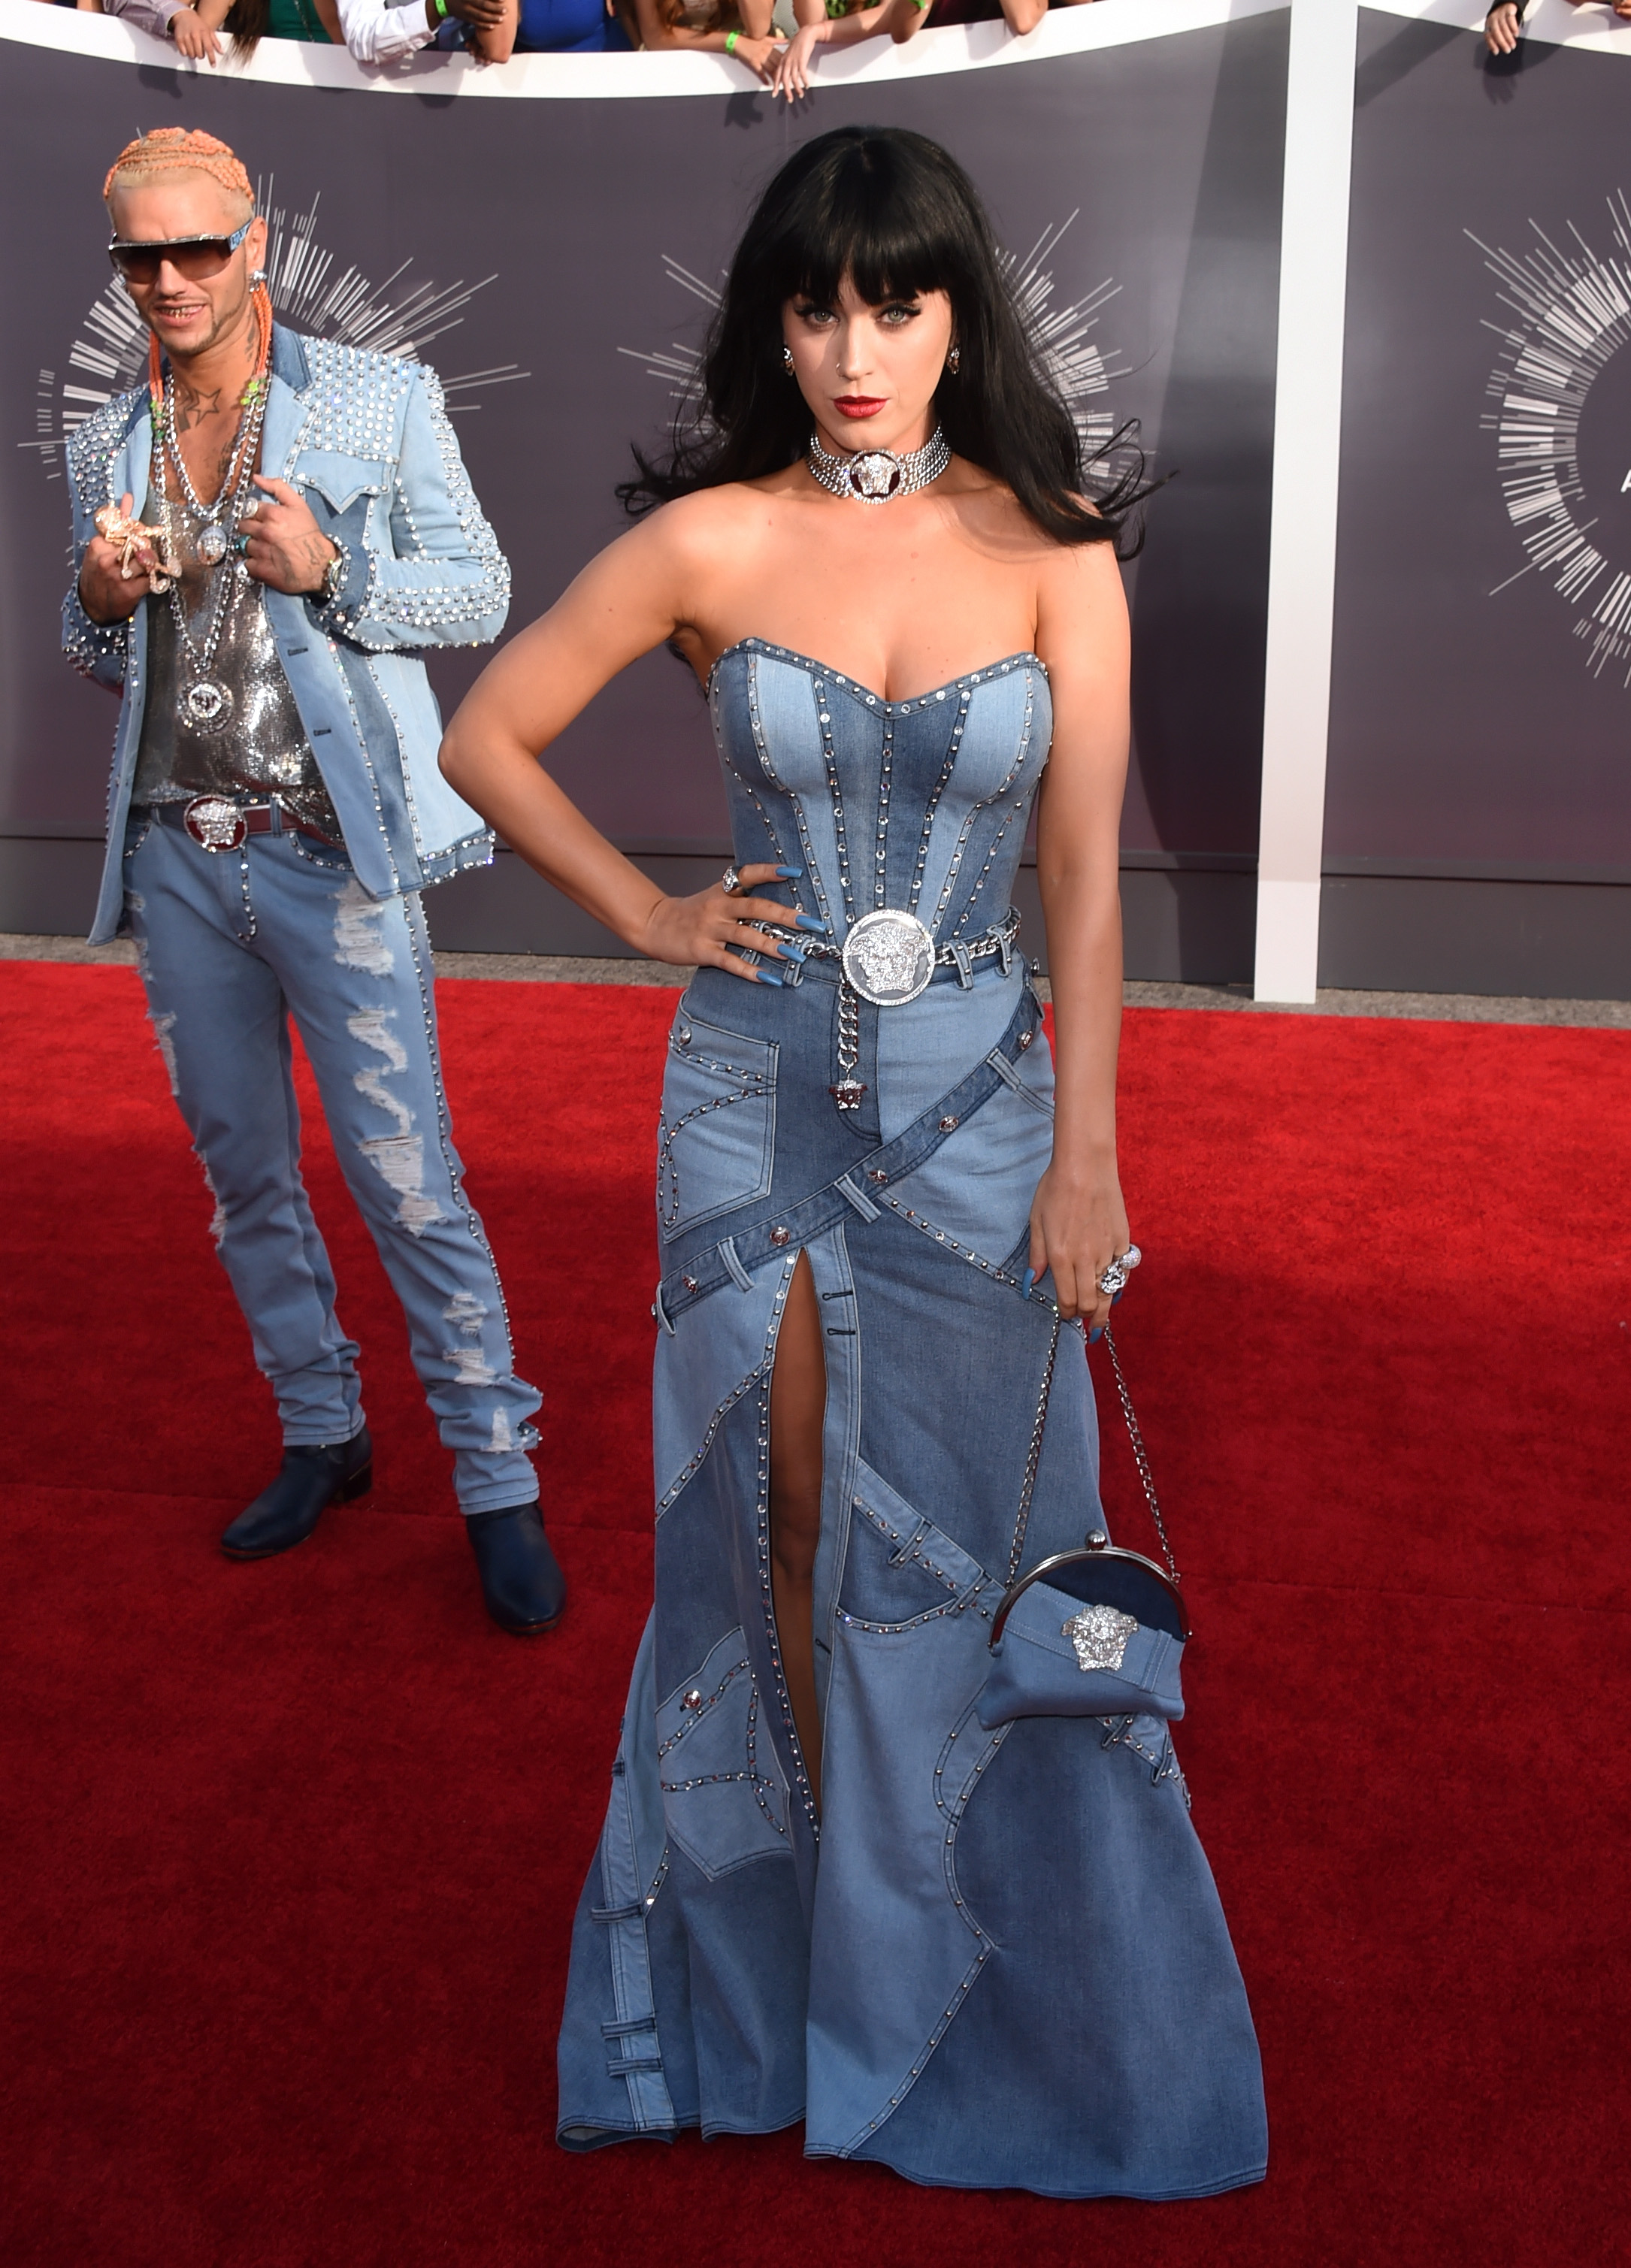 The Denim Dress Showdown Blake Lively Vs Katy Perry Vs Britney Spears